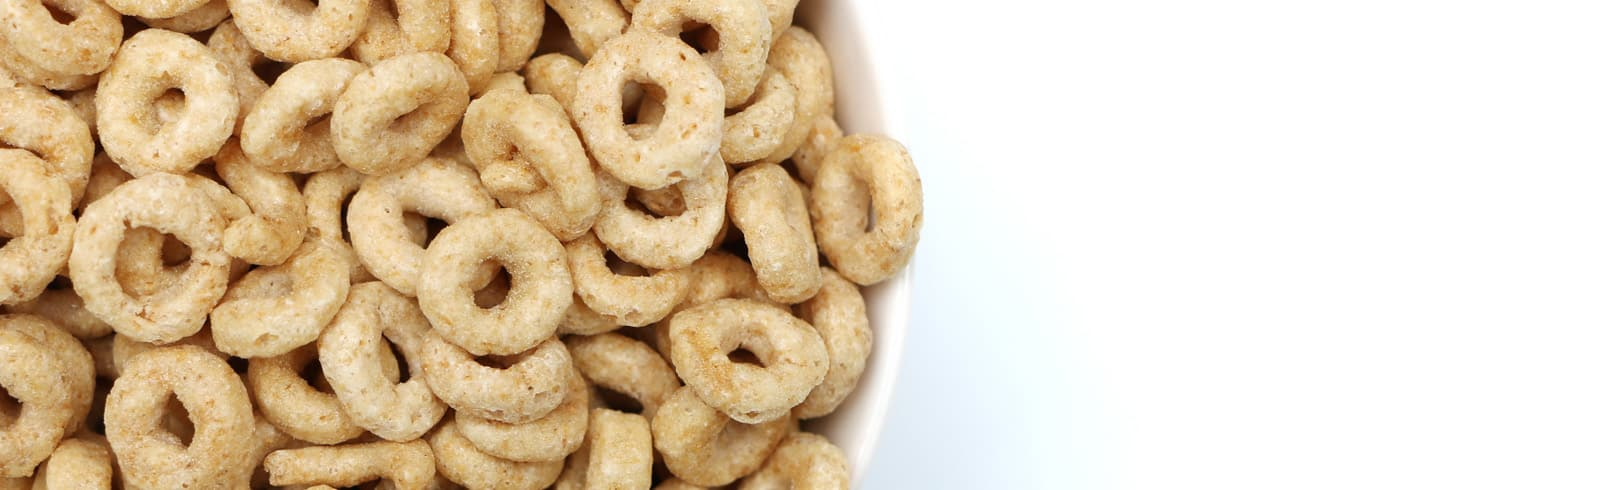 General Mills Class Action